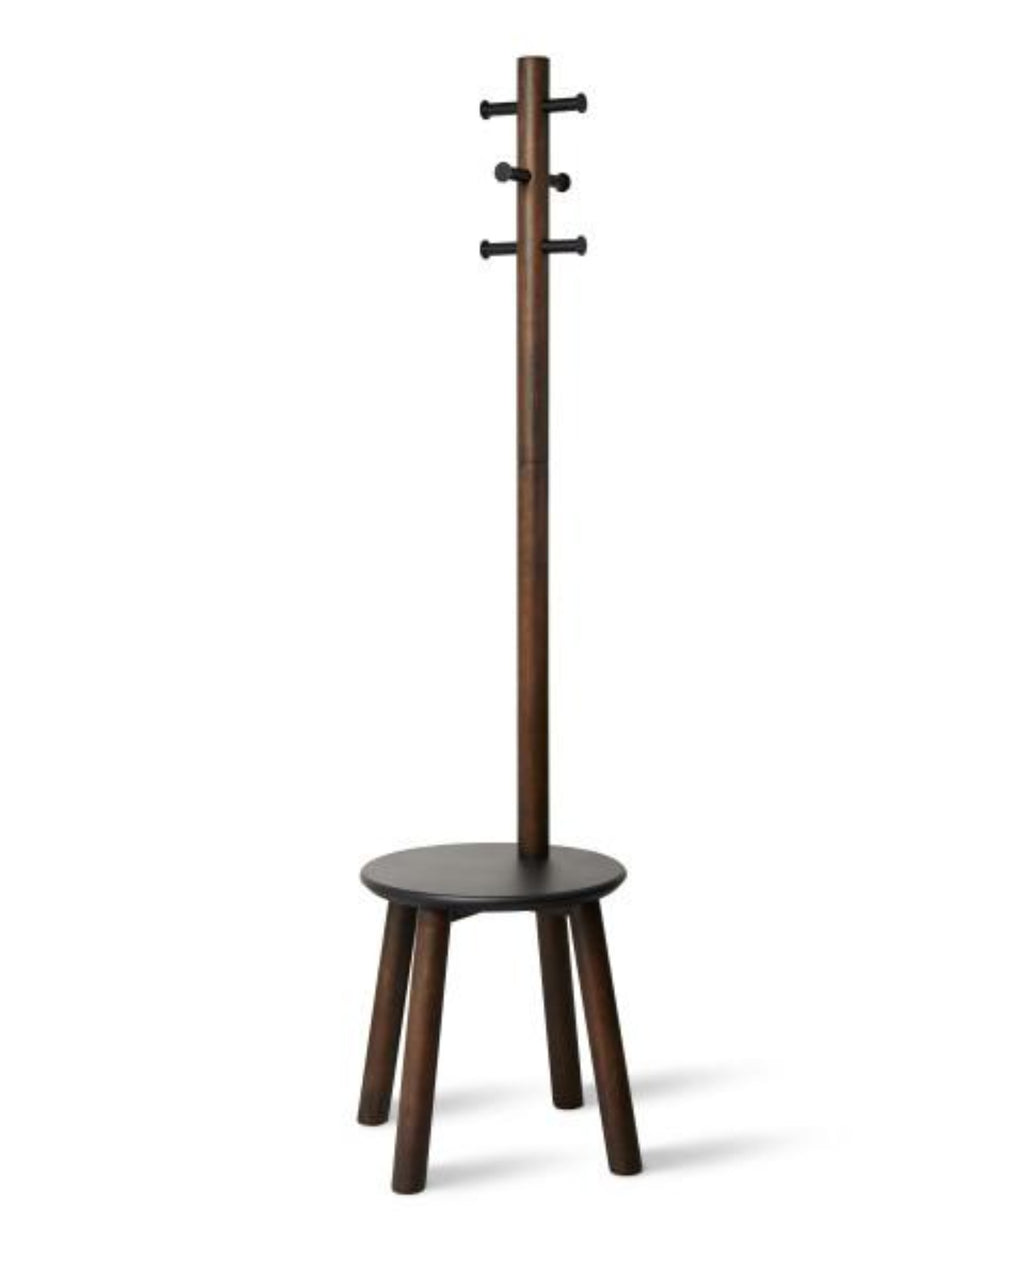 Pillar Stool & Coatrack